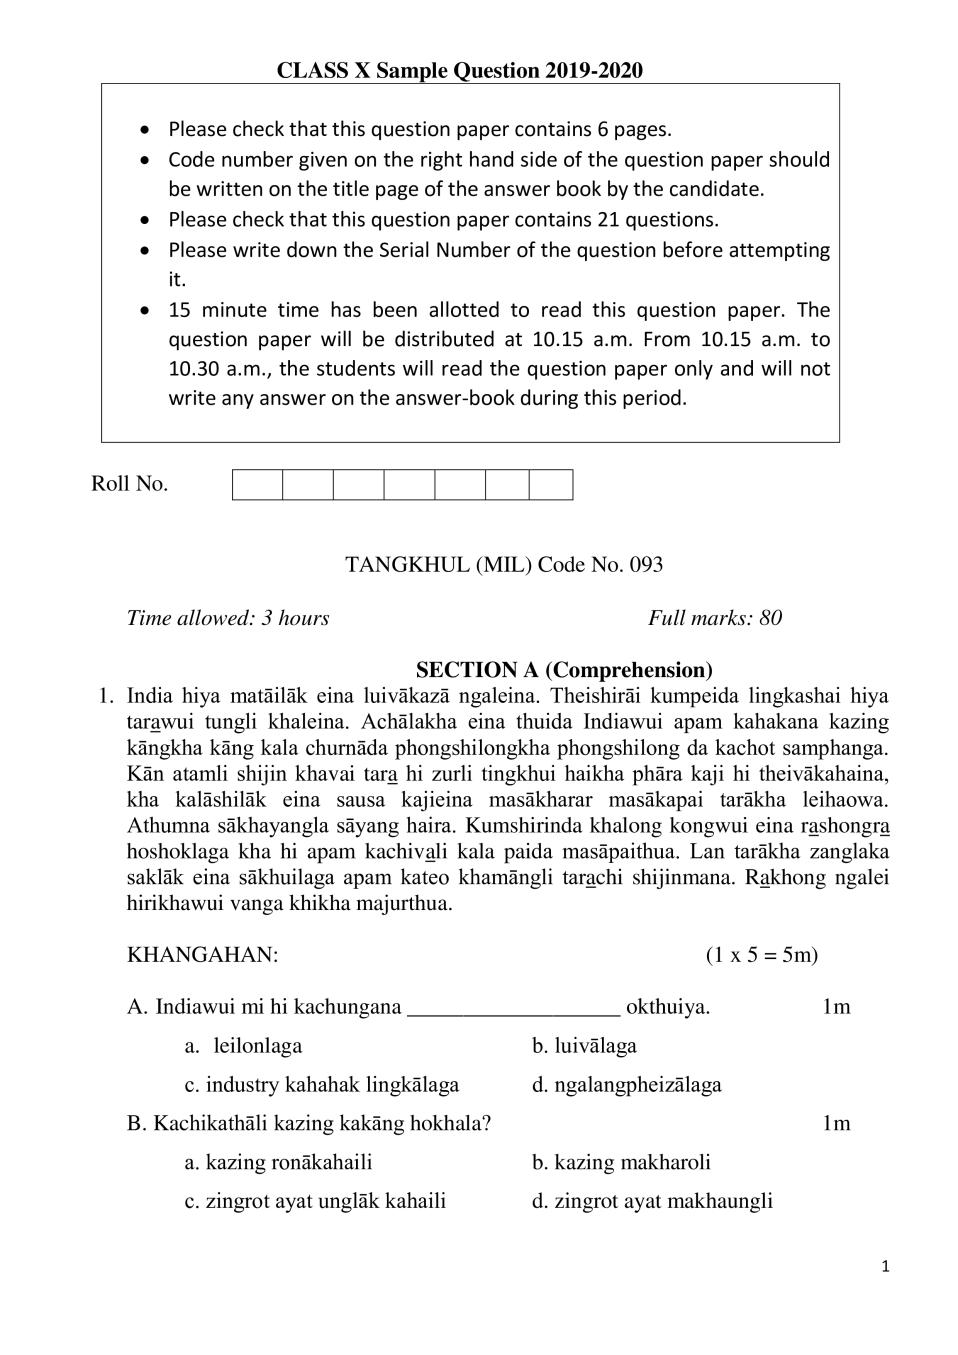 CBSE Class 10 Sample Paper 2020 for Tangkhul - Page 1